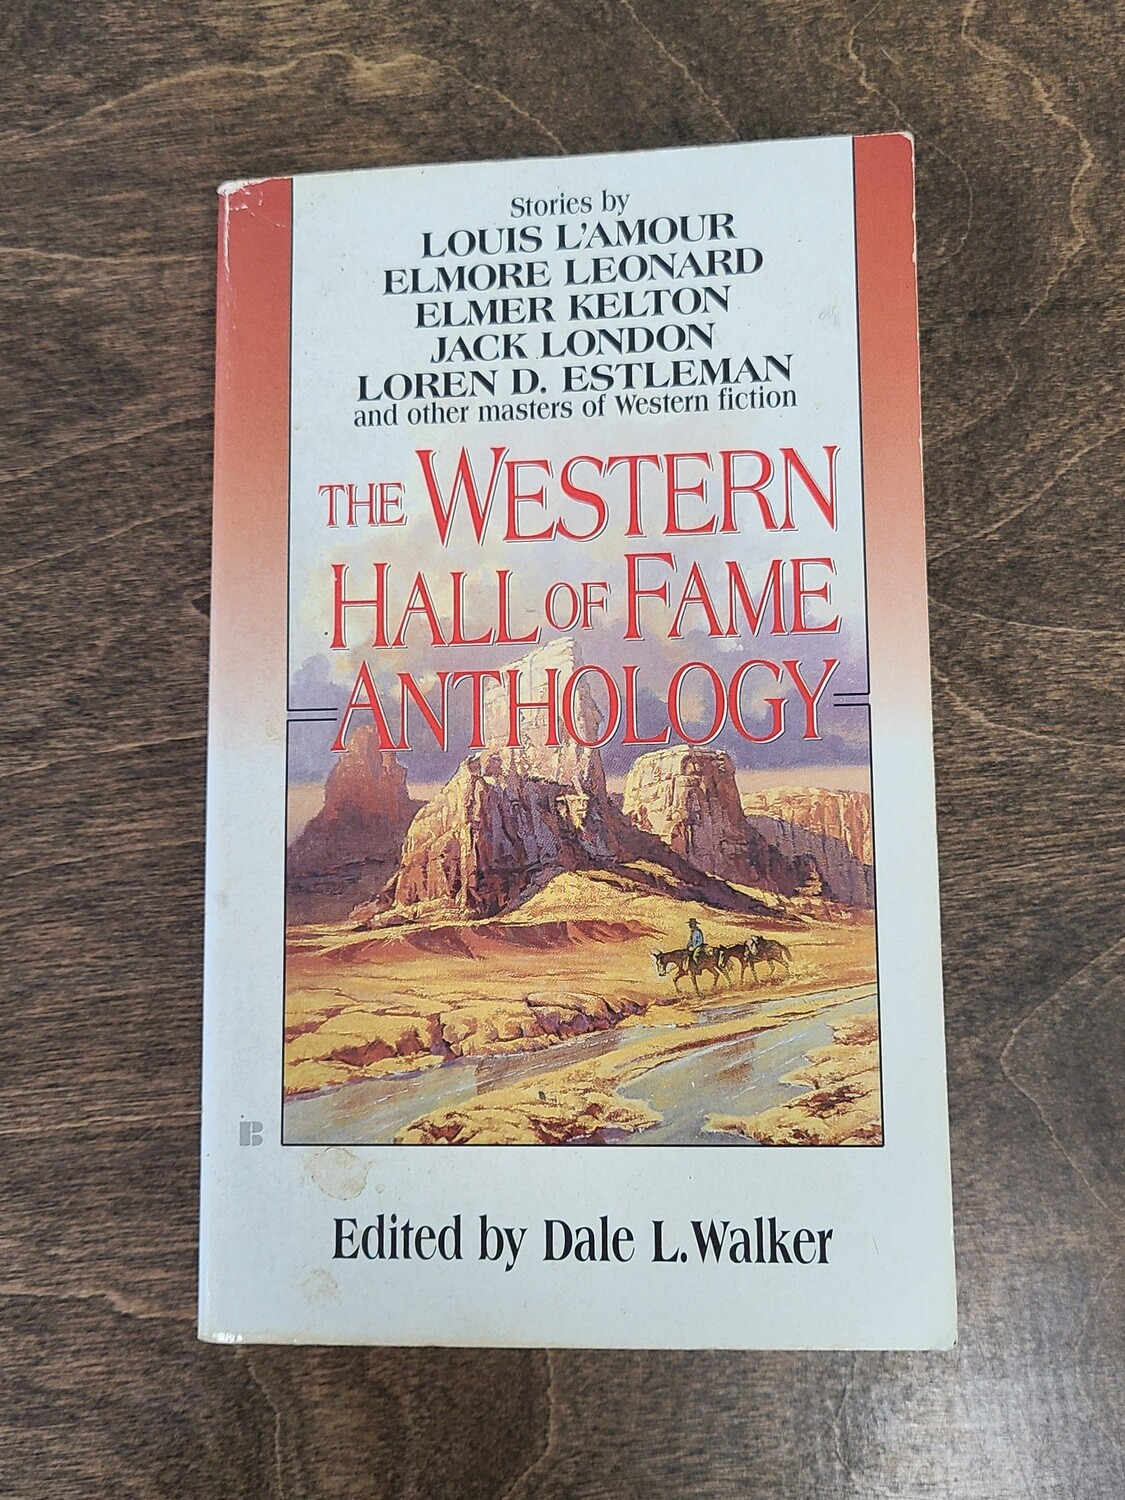 The Western Hall of Fame Anthology by Dale L. Walker